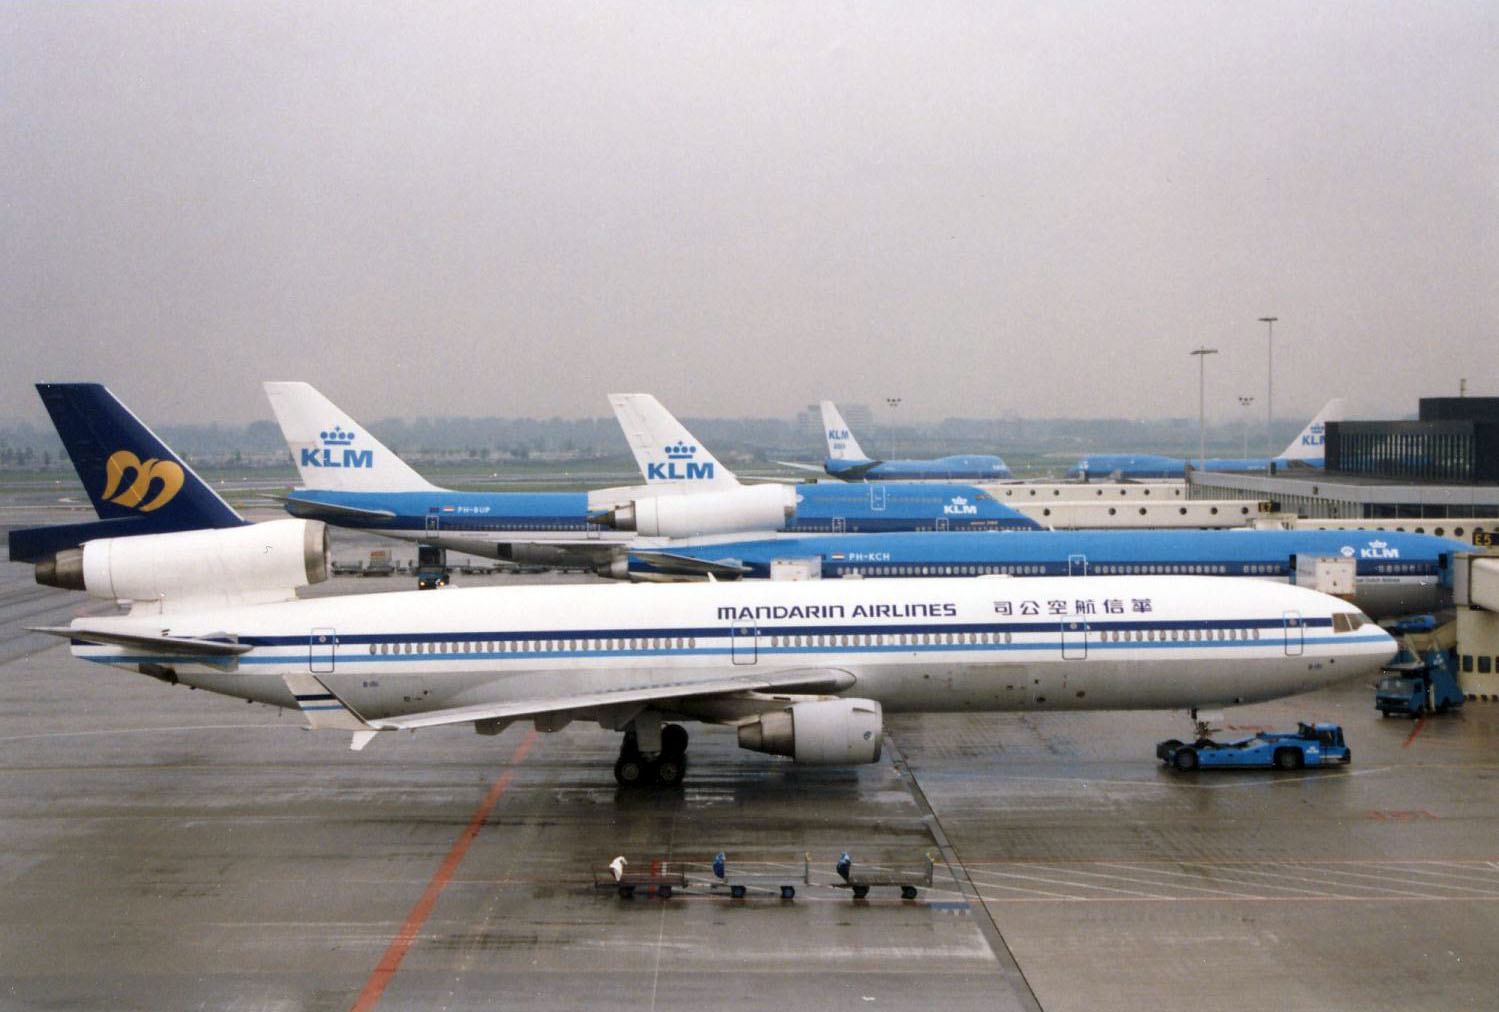 94afc4302f China Airlines Flight 642 - Wikipedia